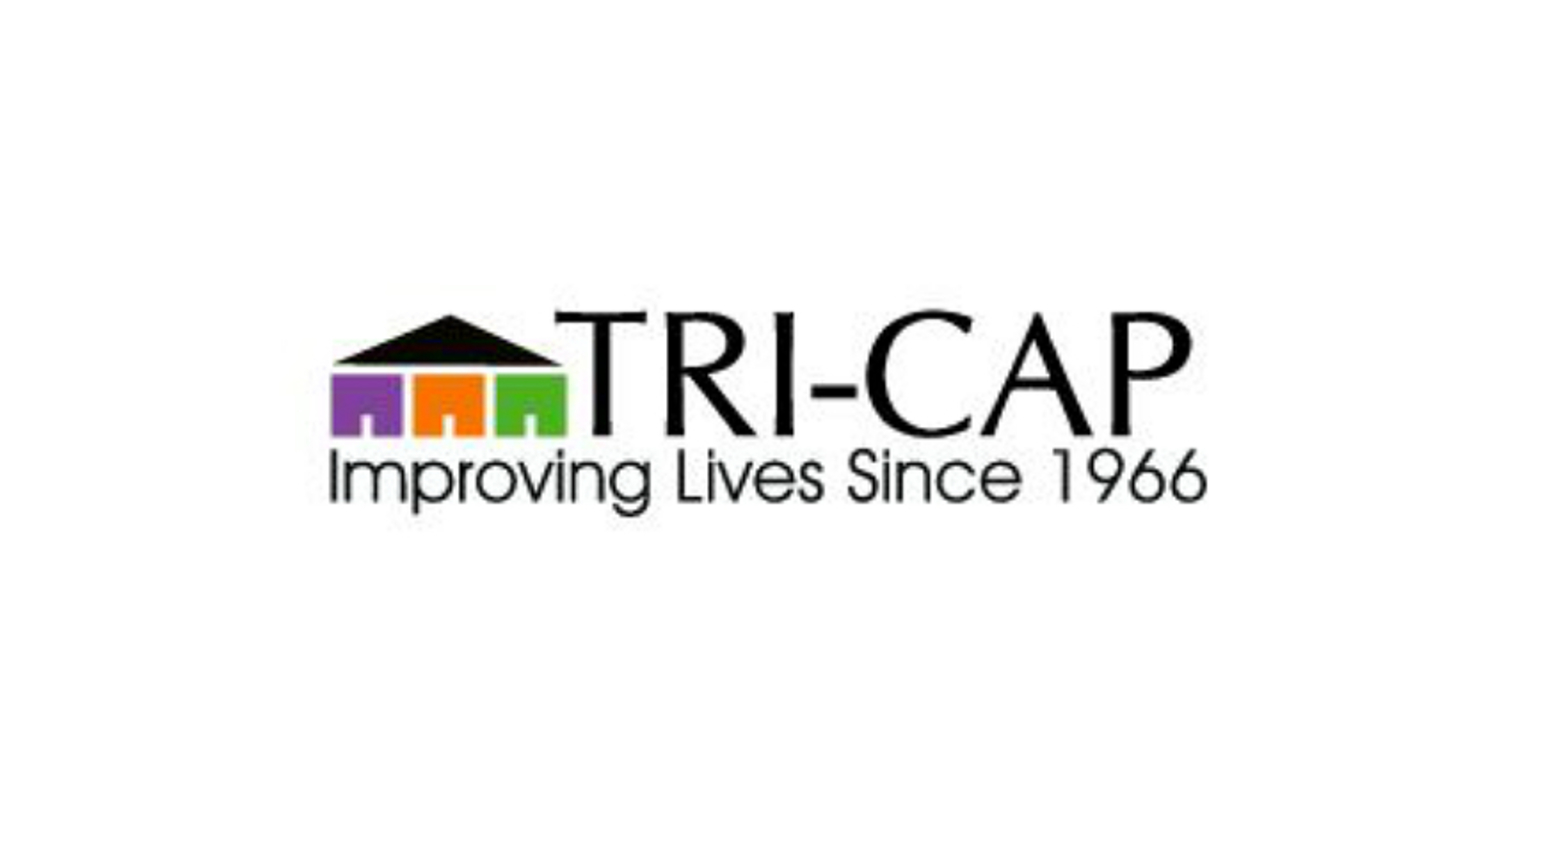 United Way Awards Grant to TRI-CAP to Help Families Struggling During Pandemic